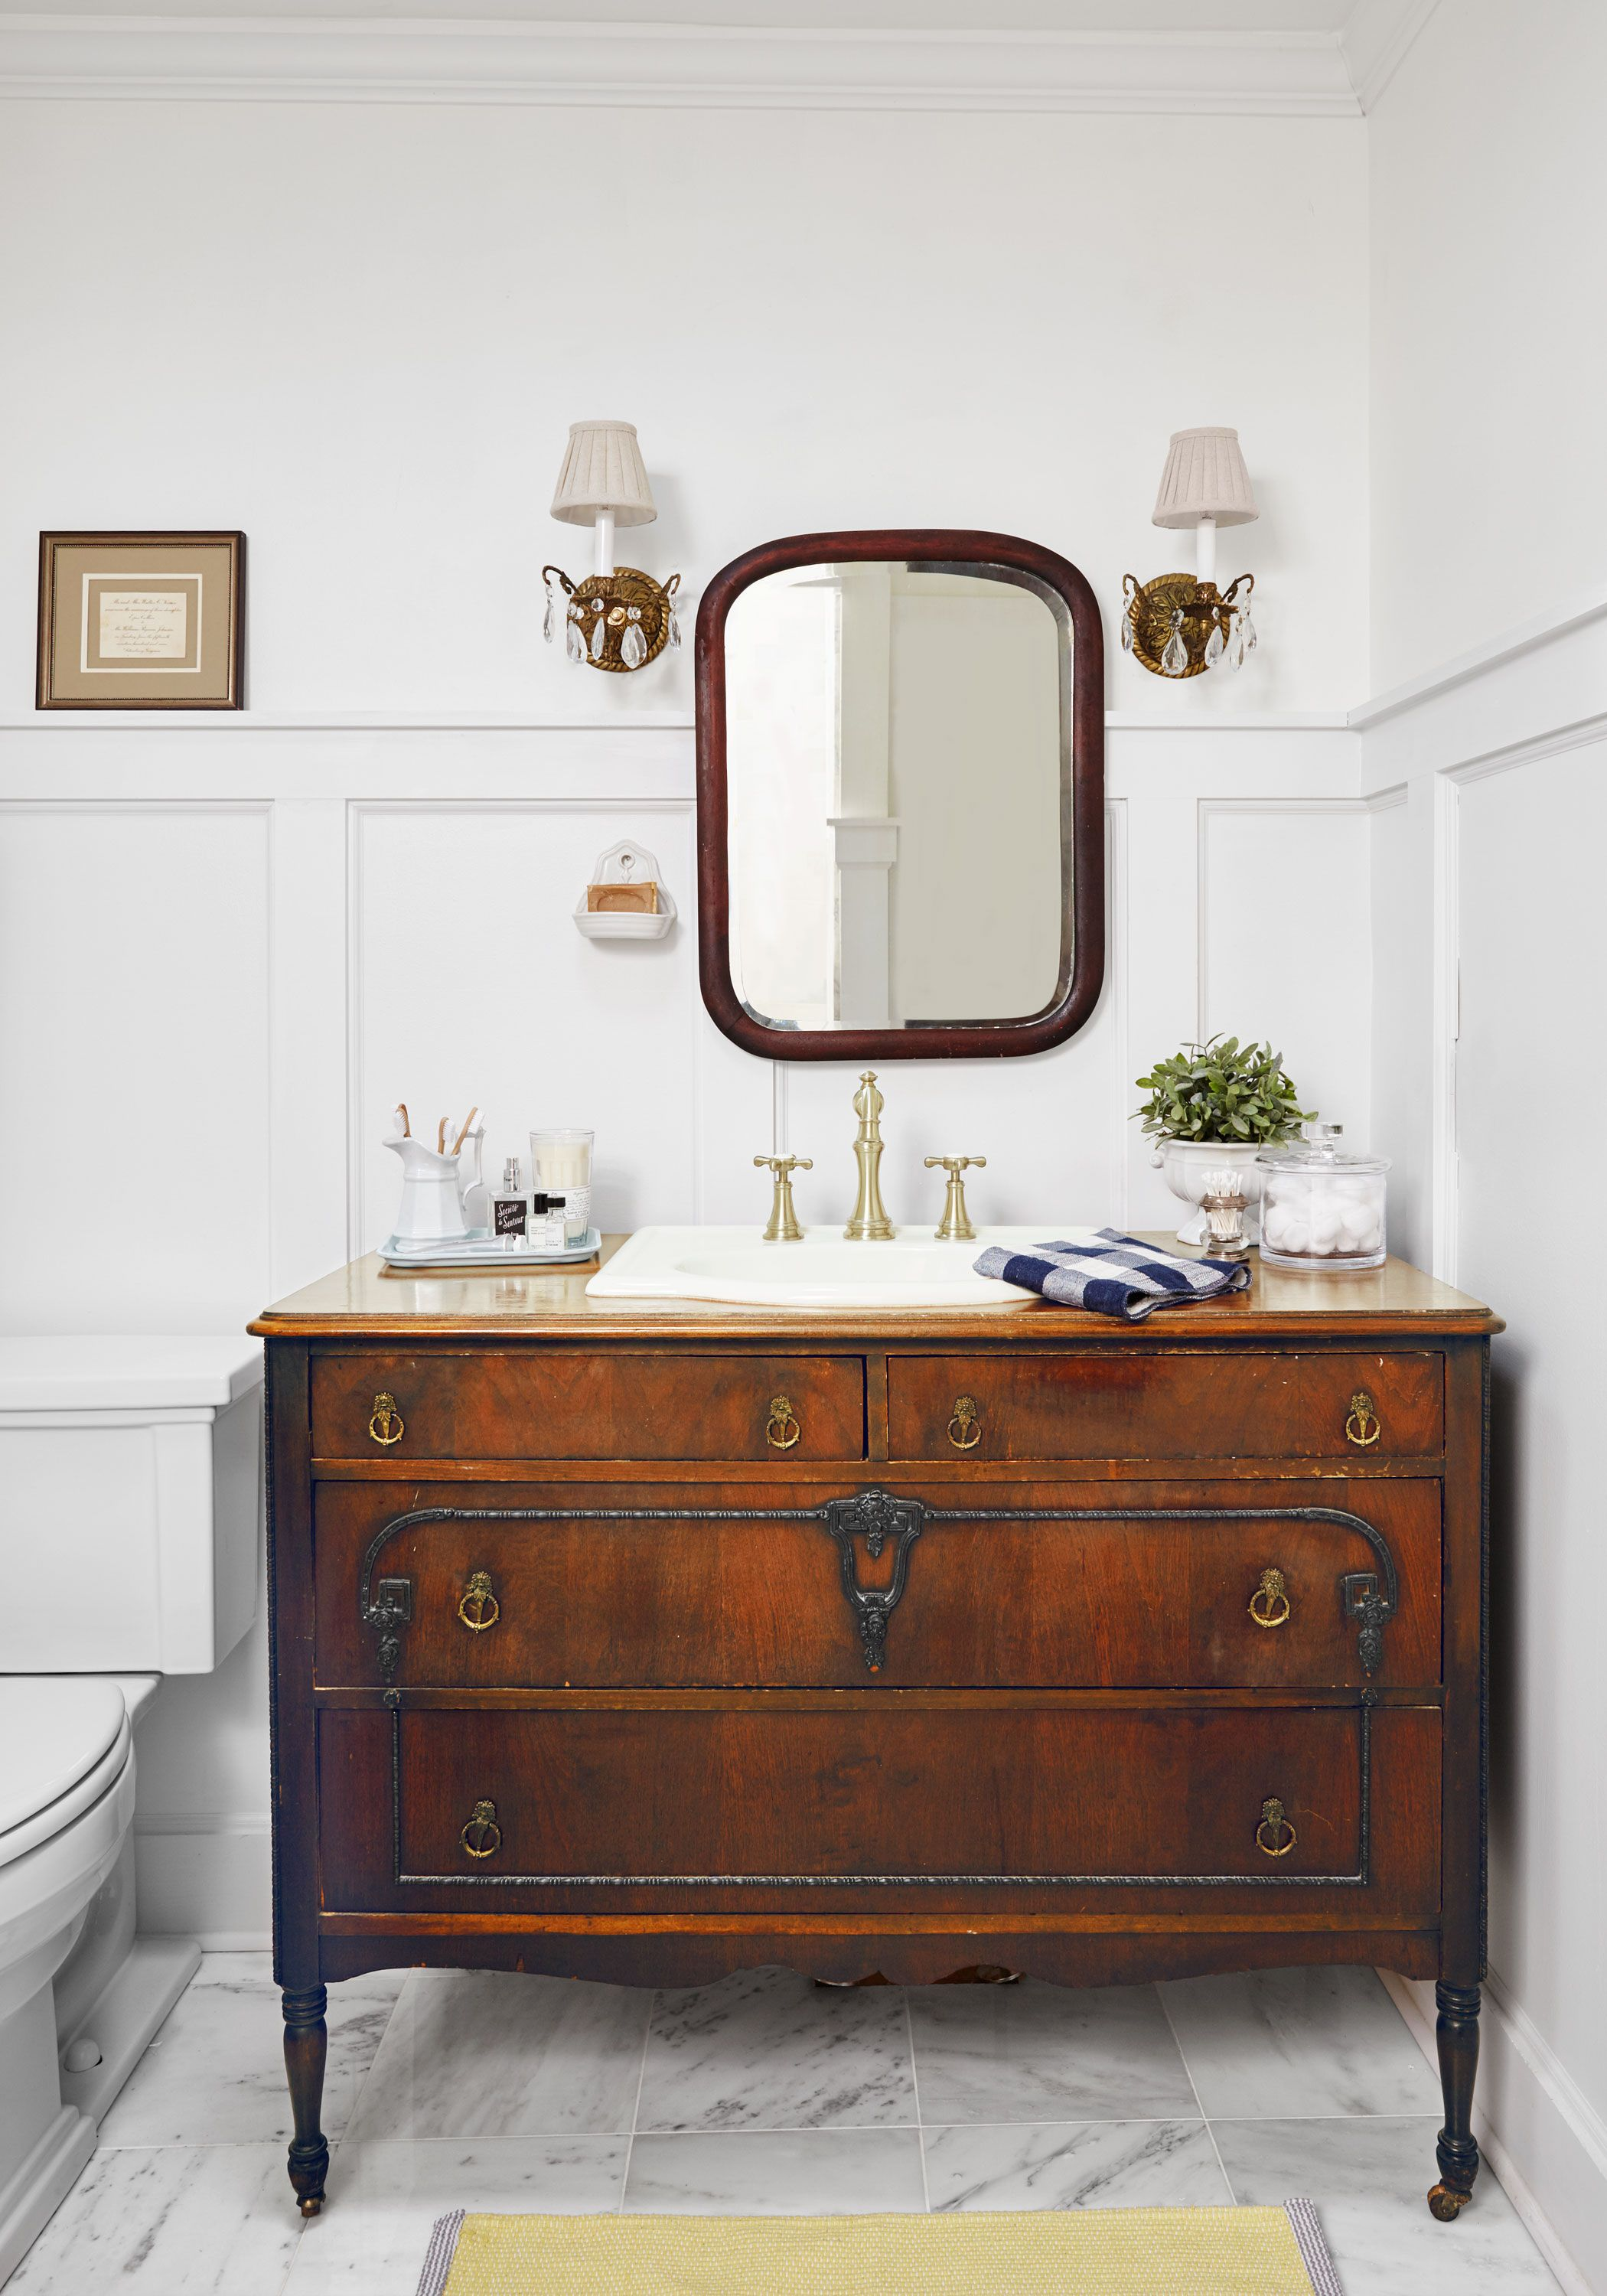 Inspiring Bathroom Decorating Ideas The Old Bespoke and Vintage